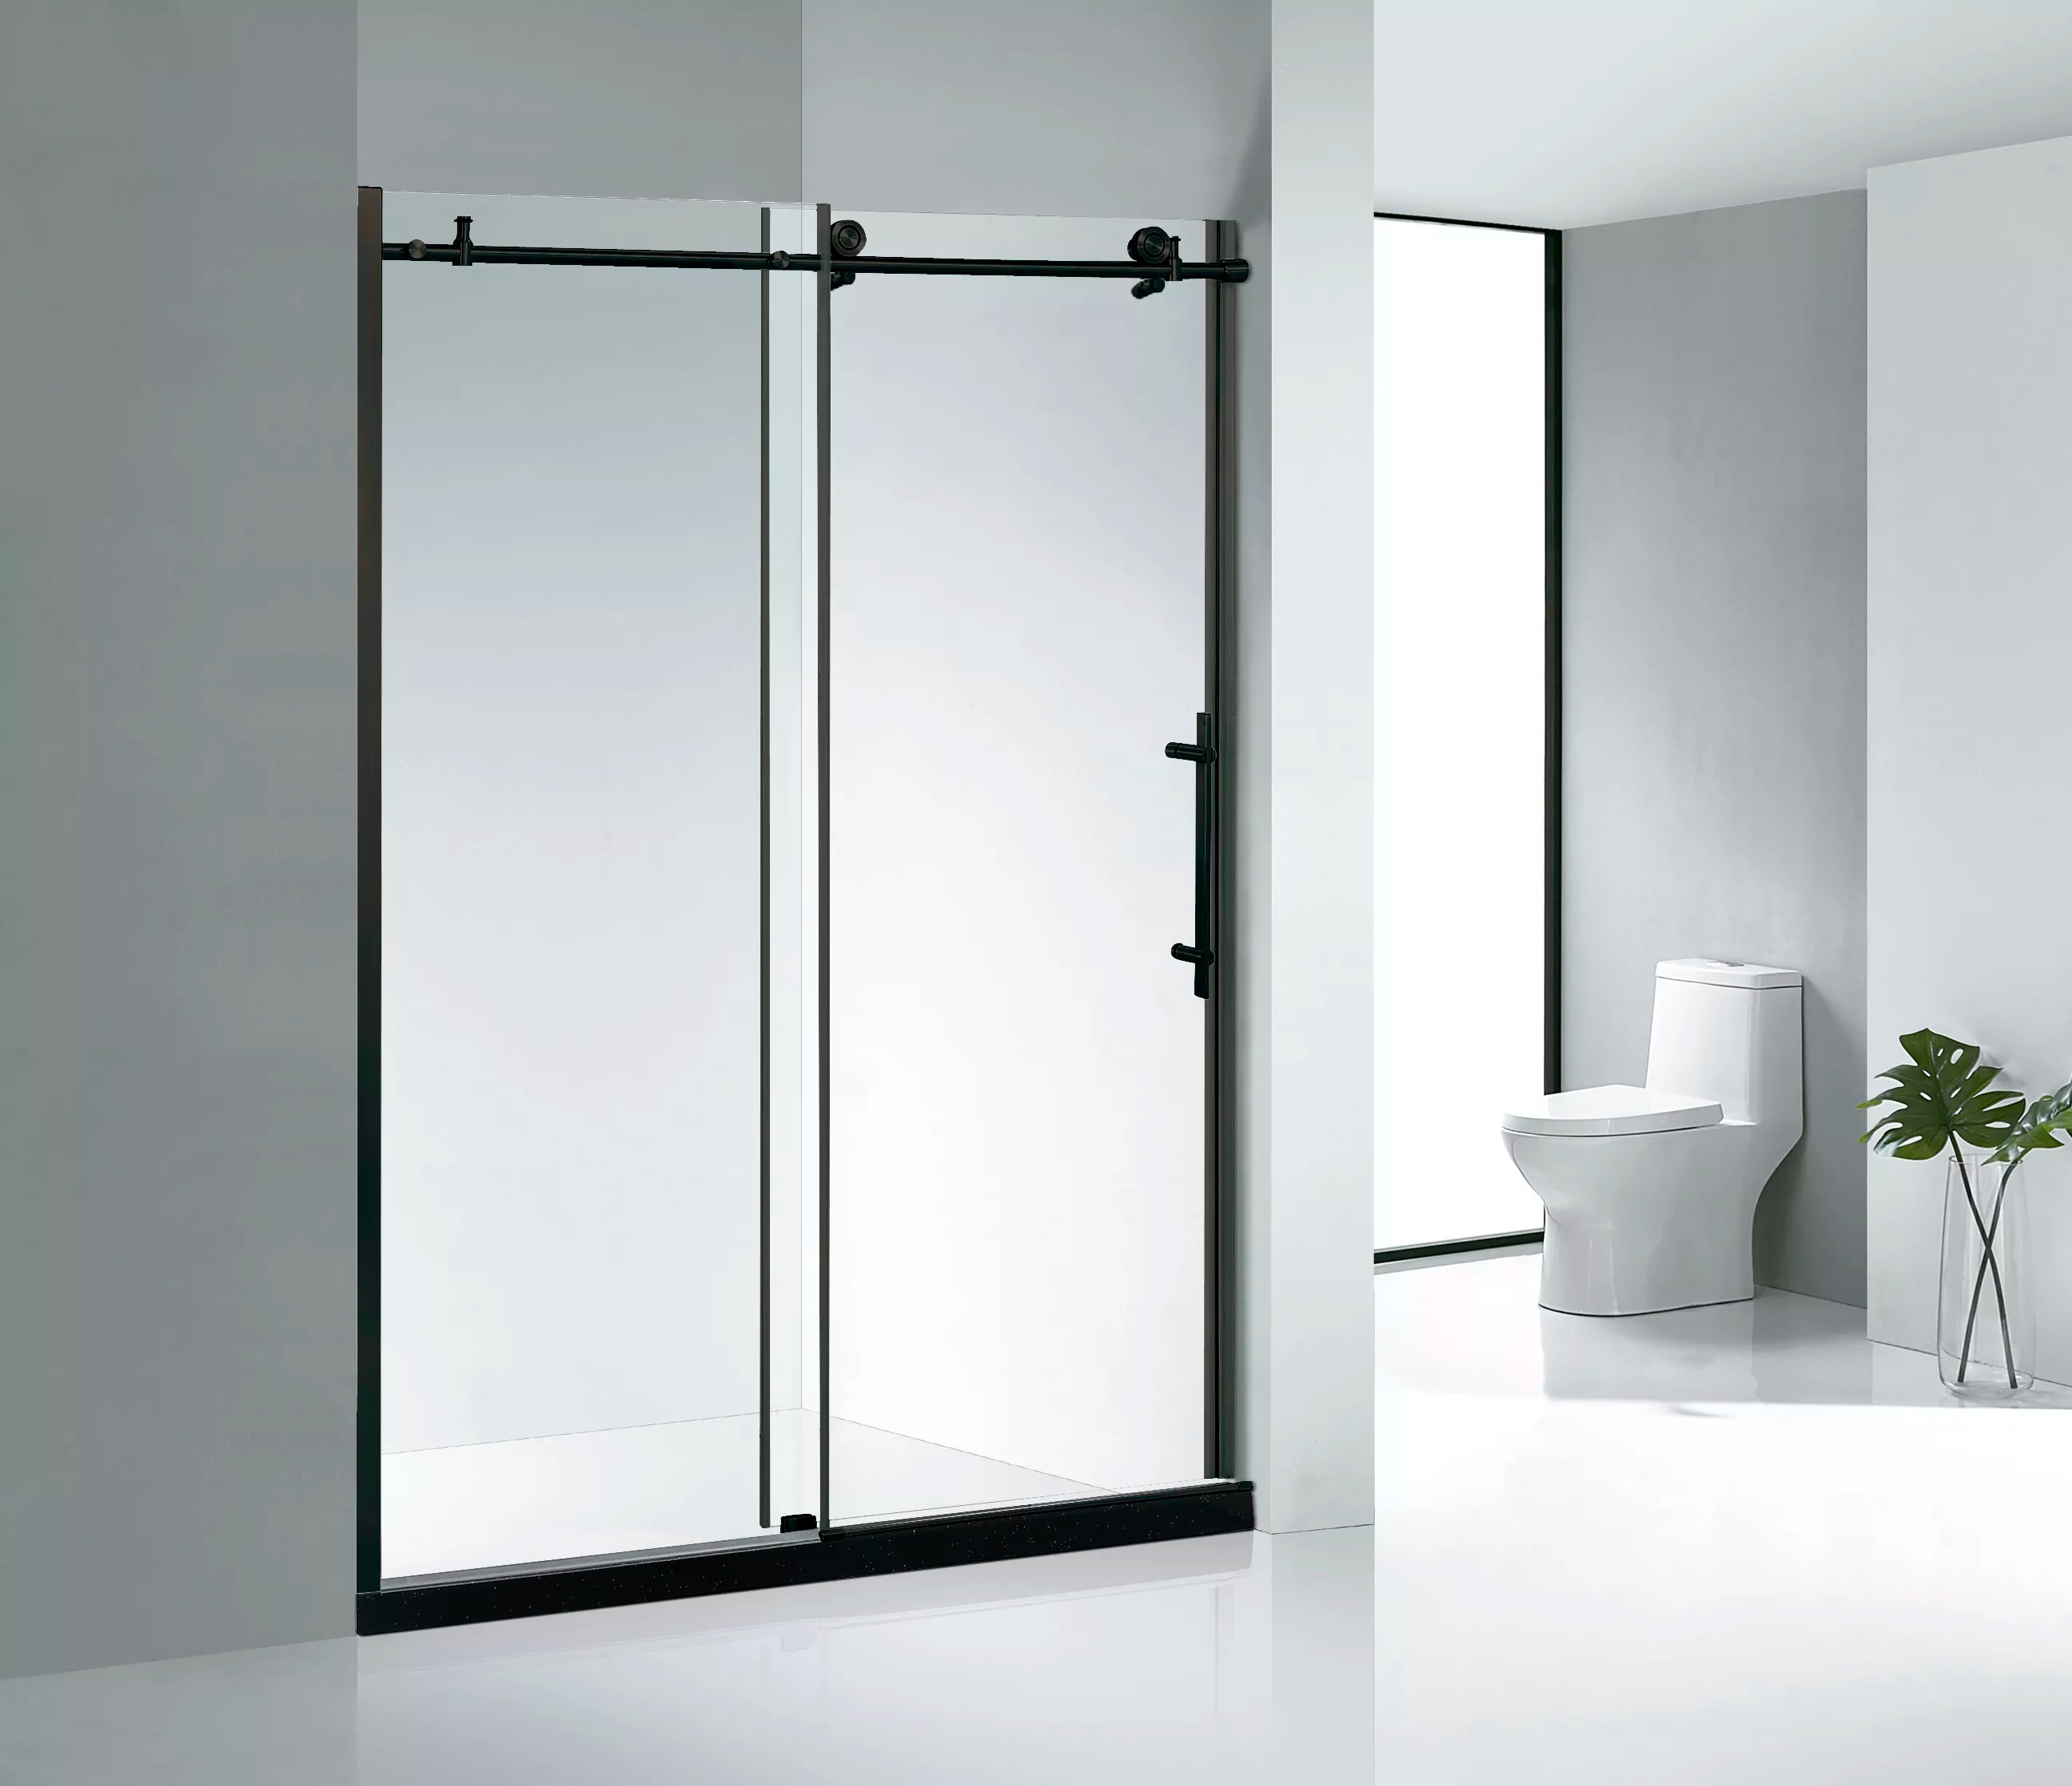 Factory Price Matte Black Bathroom 48 Inch Sliding Frameless Glass Door Shower Enclosure Kd8013c Buy Bathroom Sliding Glass Door Frameless Sliding